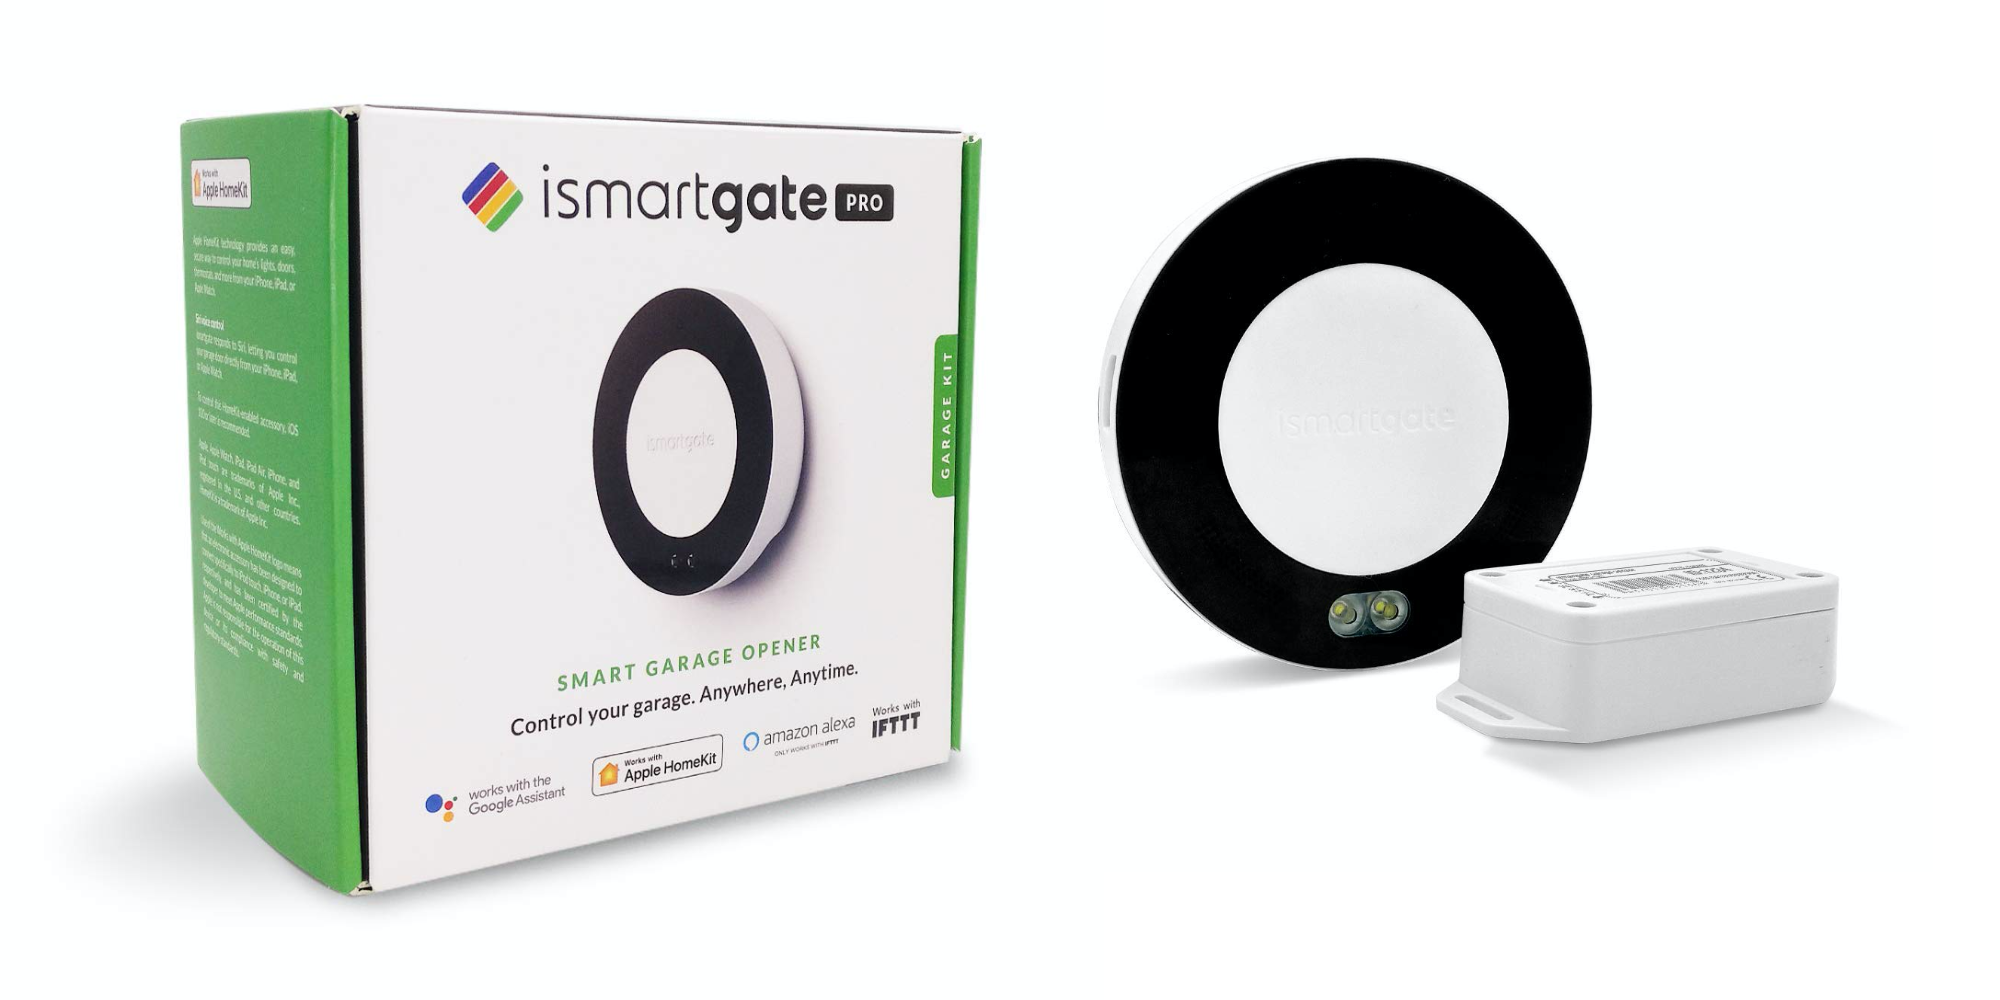 iSmartgate Pro is an easy to install HomeKit garage door opener - 9to5Mac